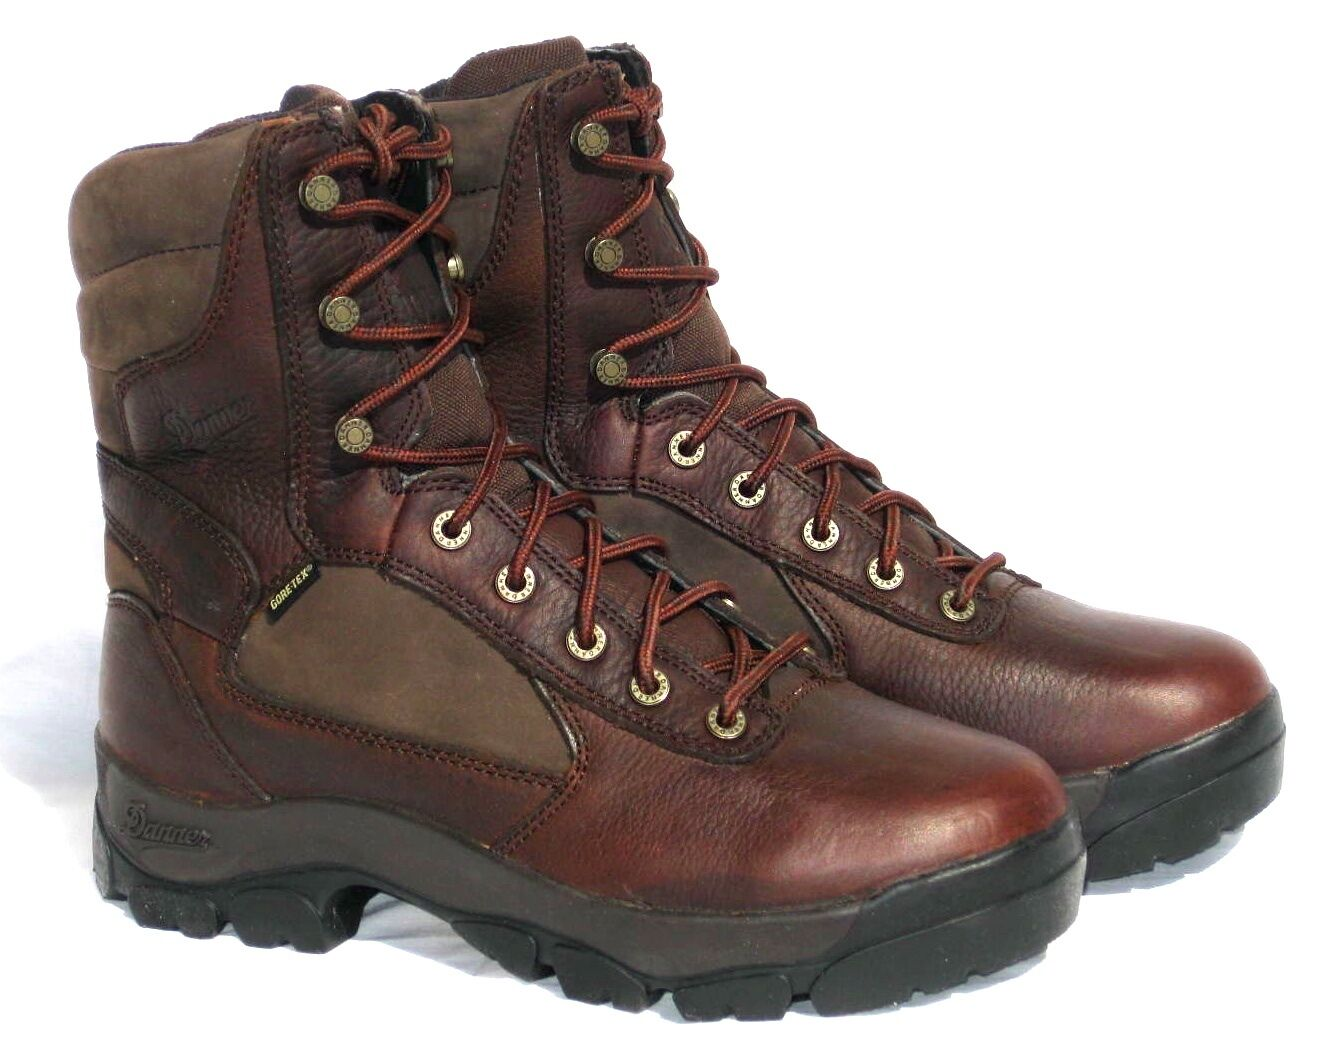 New Cabela's DANNER High Country Big Horn 400 Gram GORE-TEX Hunting Boots